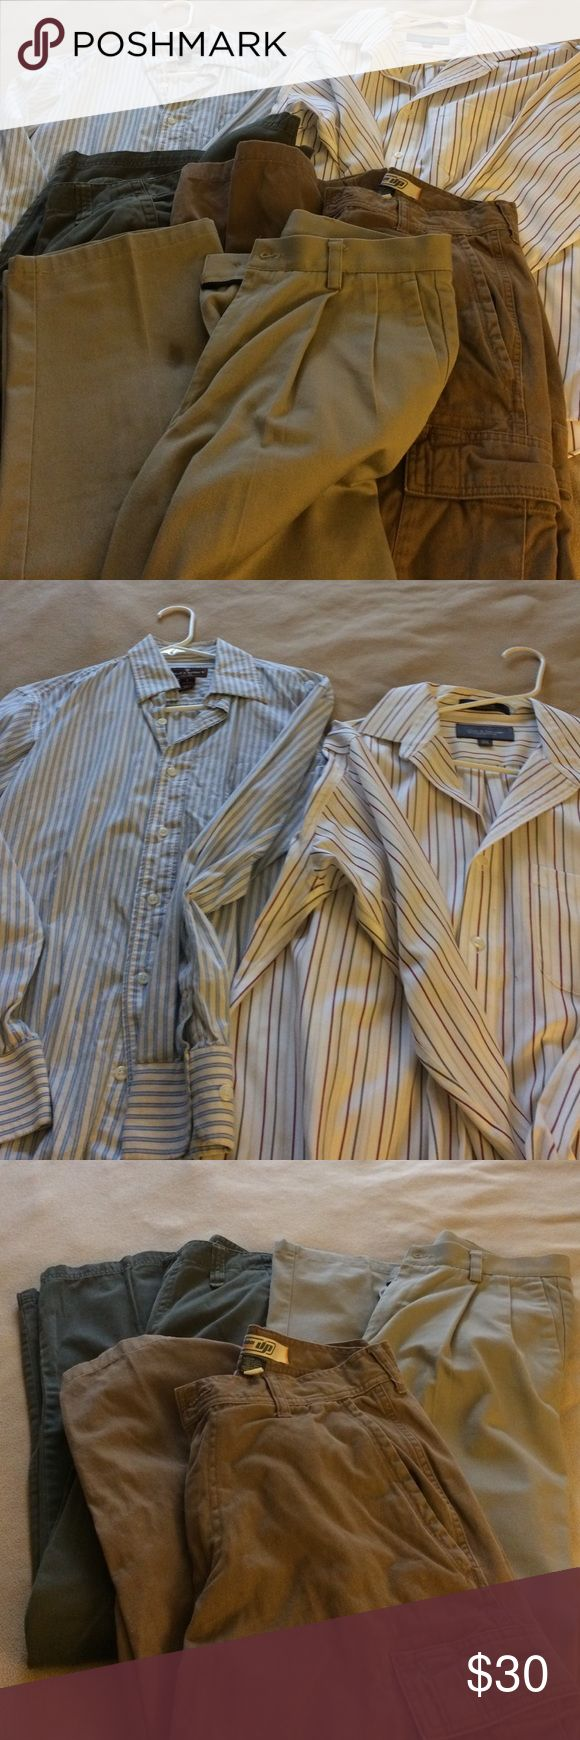 Men's Shirts and Pants Bundle Included in this listing:   #1 croft and barrow striped button down shirt, size 15 1/2 neck. White with narrow gray red and cream stripes.      #2 Steve &a Barry's striped button down, size Small. Blue and white stripes            #3 urban pipeline cargo pants, size 30x32.      #4 Tony Hawk Cargo pants size 30X32. These are new with tags #5 dockers khakis, pleated, classic fit size 30X34.  I can create a custom listing if you just want some items, but this is…